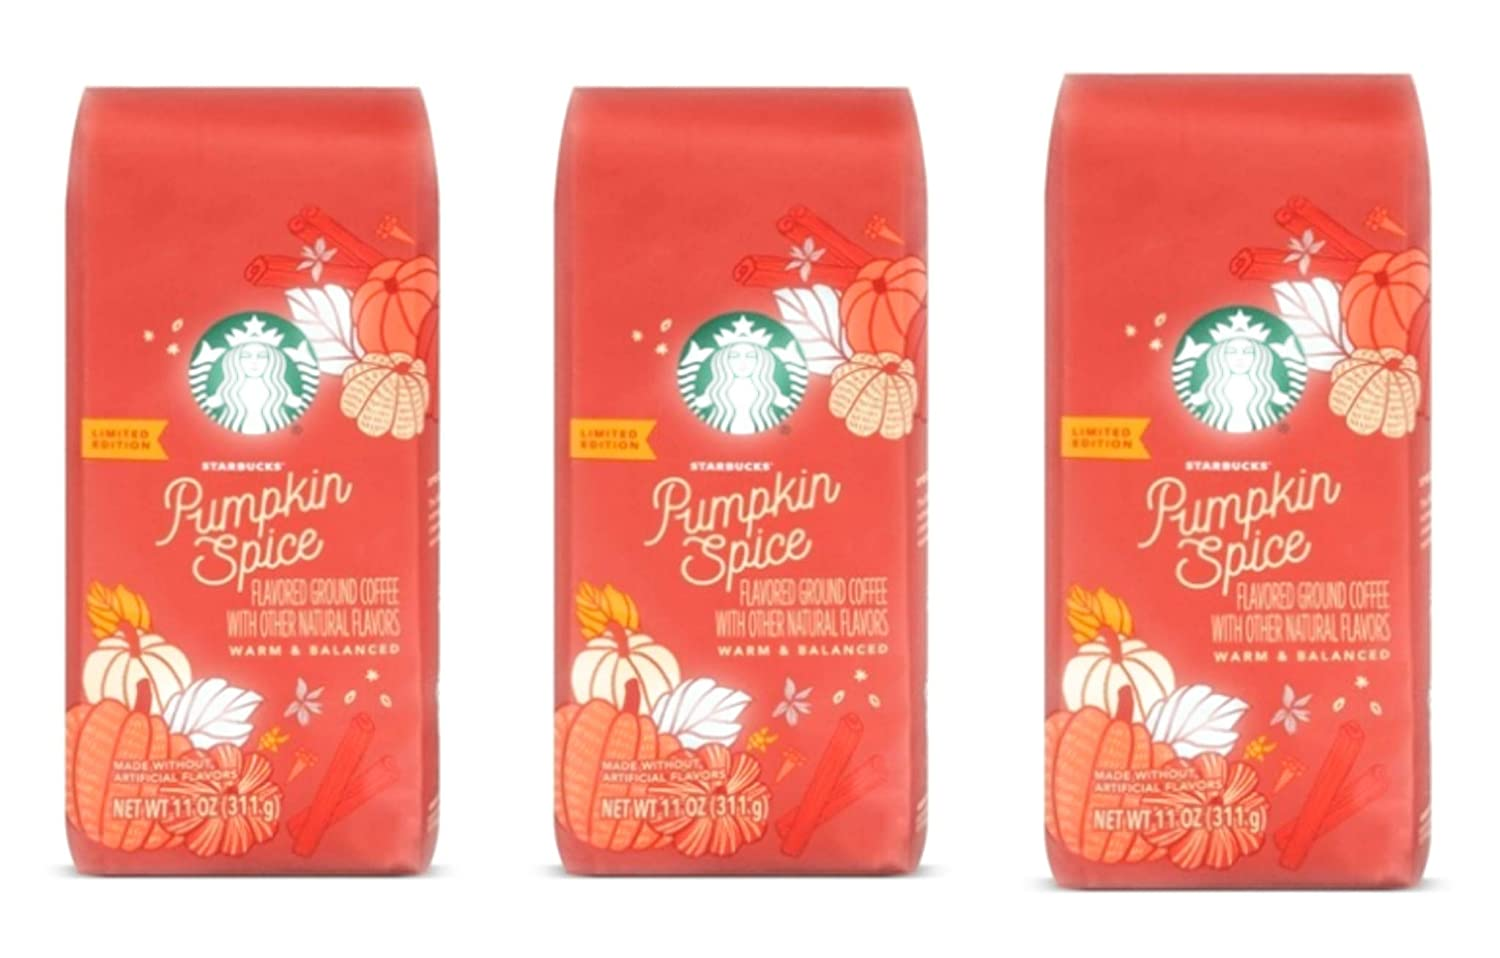 Starbucks 2019 Pumpkin Spice Ground Coffee - Pack of 3 Bags - 11 oz Per Bag - Limited Edition Flavored Coffee - Warm & Balanced